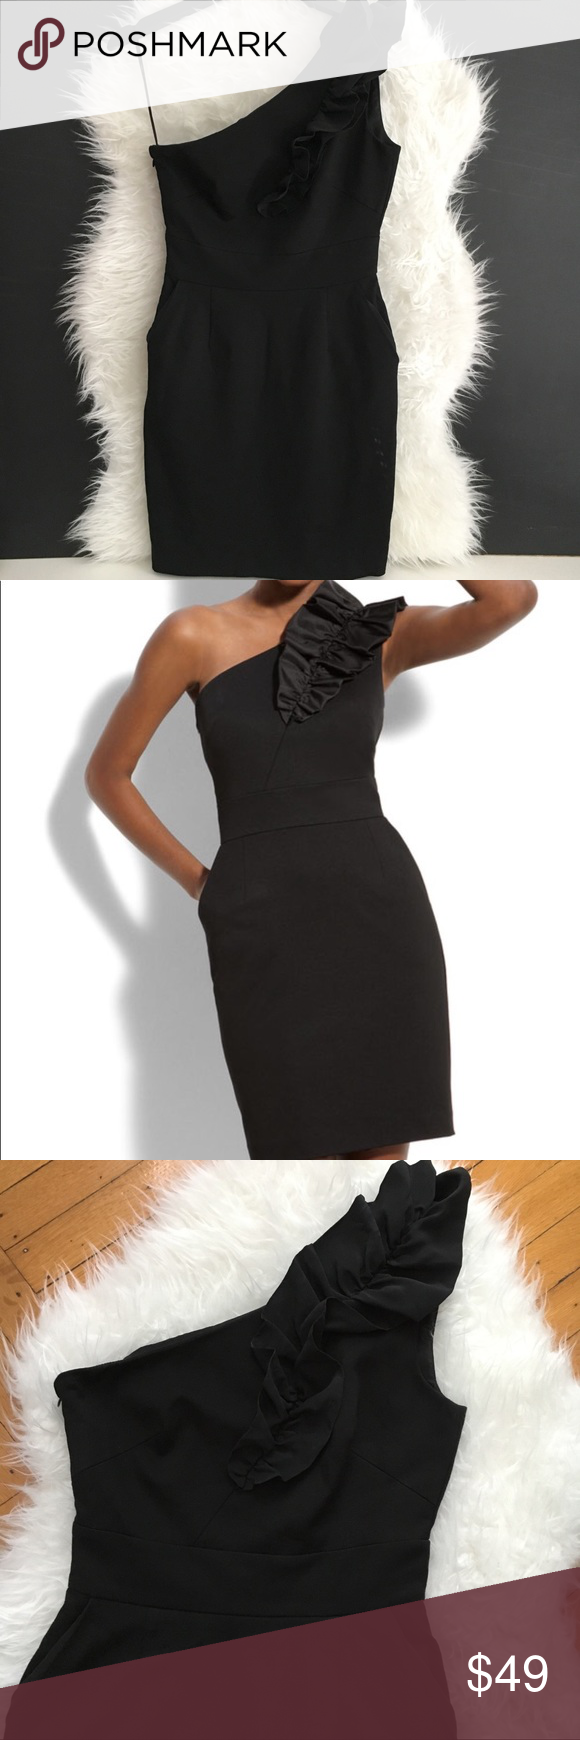 Trina turk one shoulder cocktail dress size